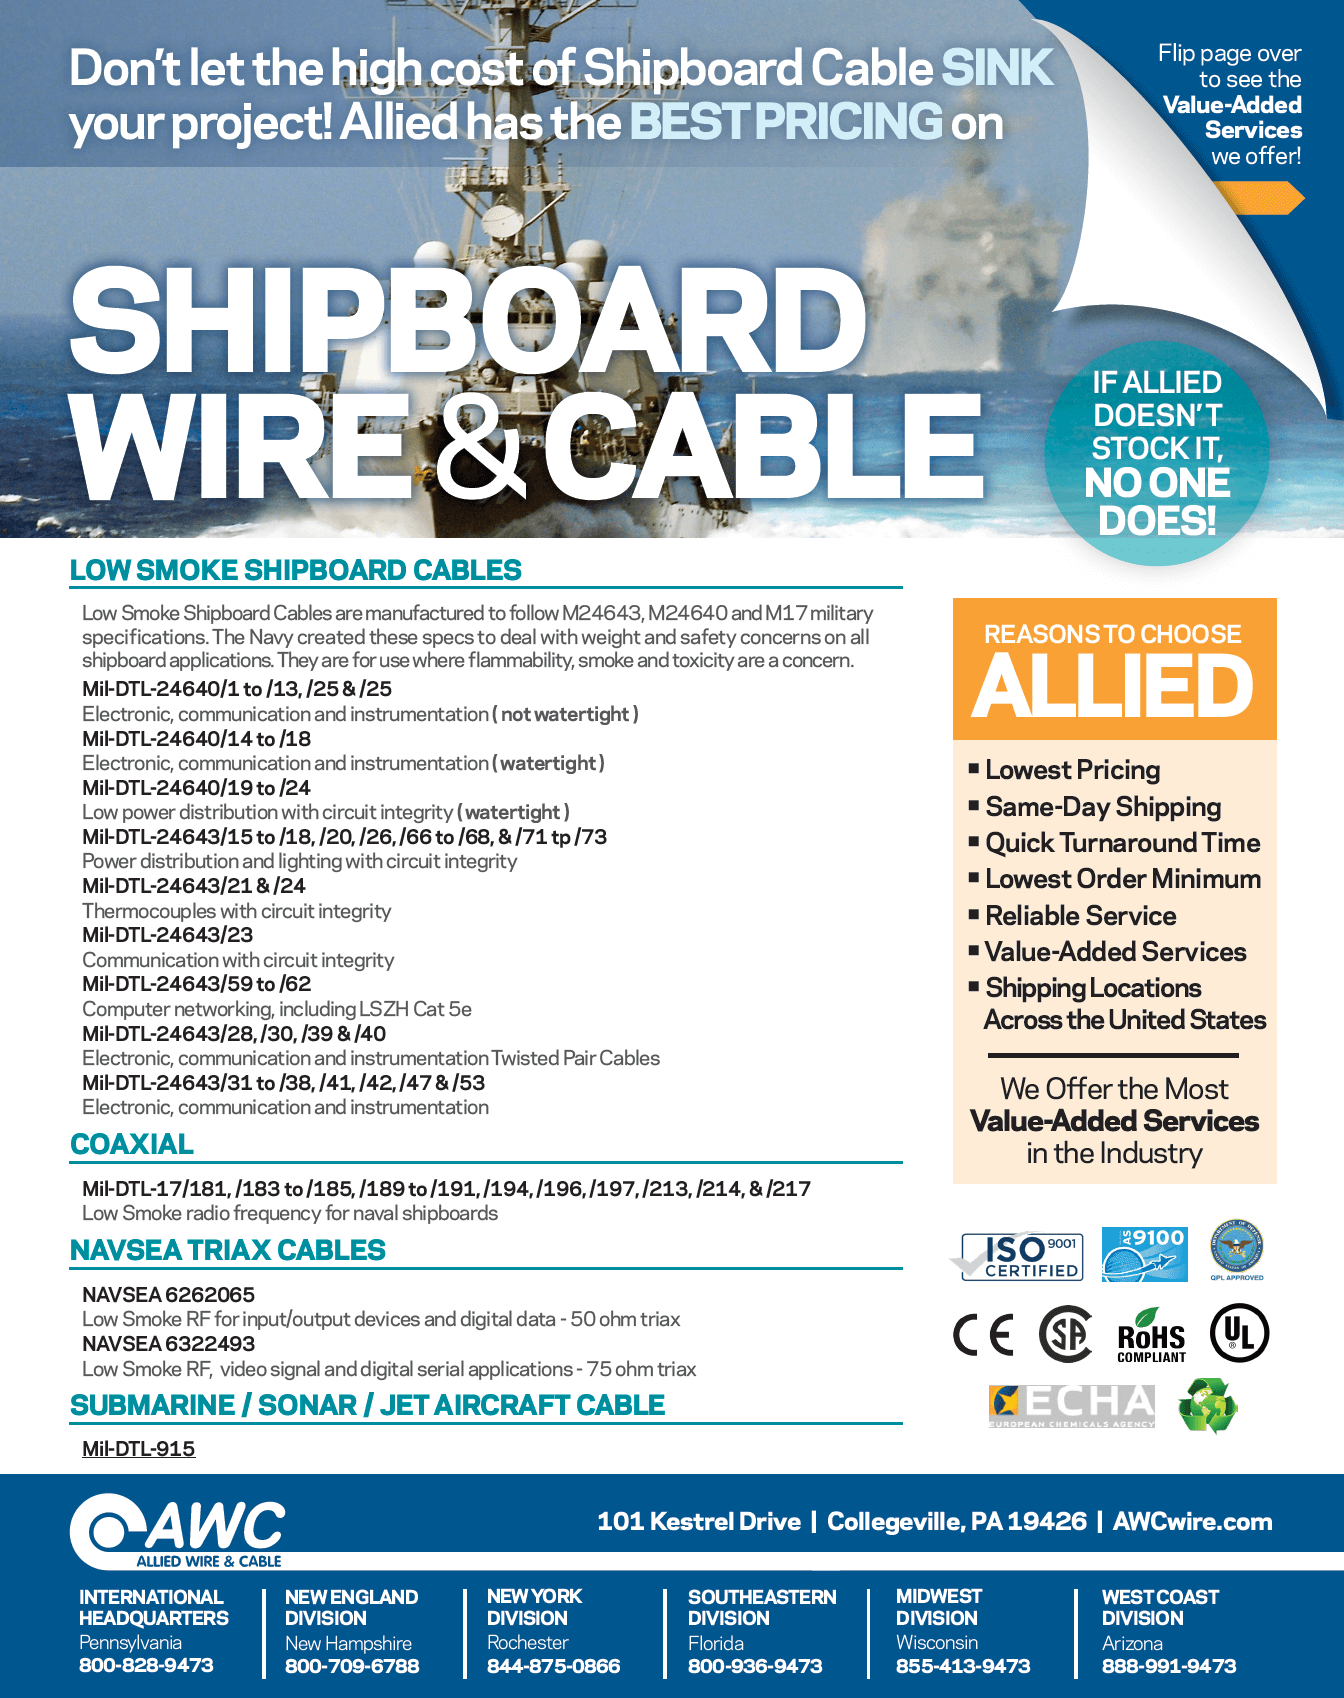 Shipboard Wire & Cable Line Card from Allied Wire & Cable